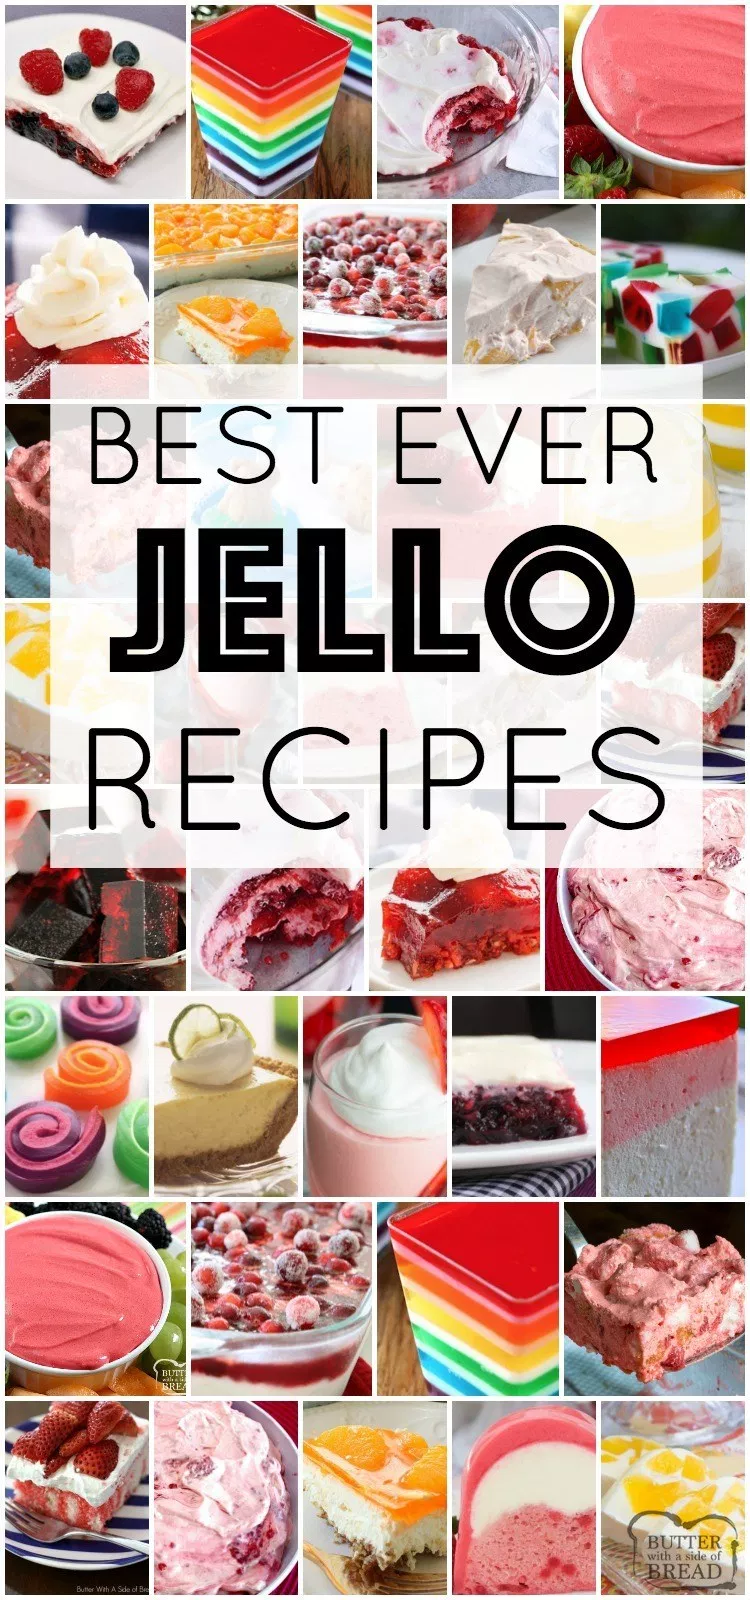 Best Jello Recipes Ever All Gathered In One Place Jello Recipes For Holidays Parties Dessert And More We C Jello Recipes Jello Dessert Recipes Jello Salad